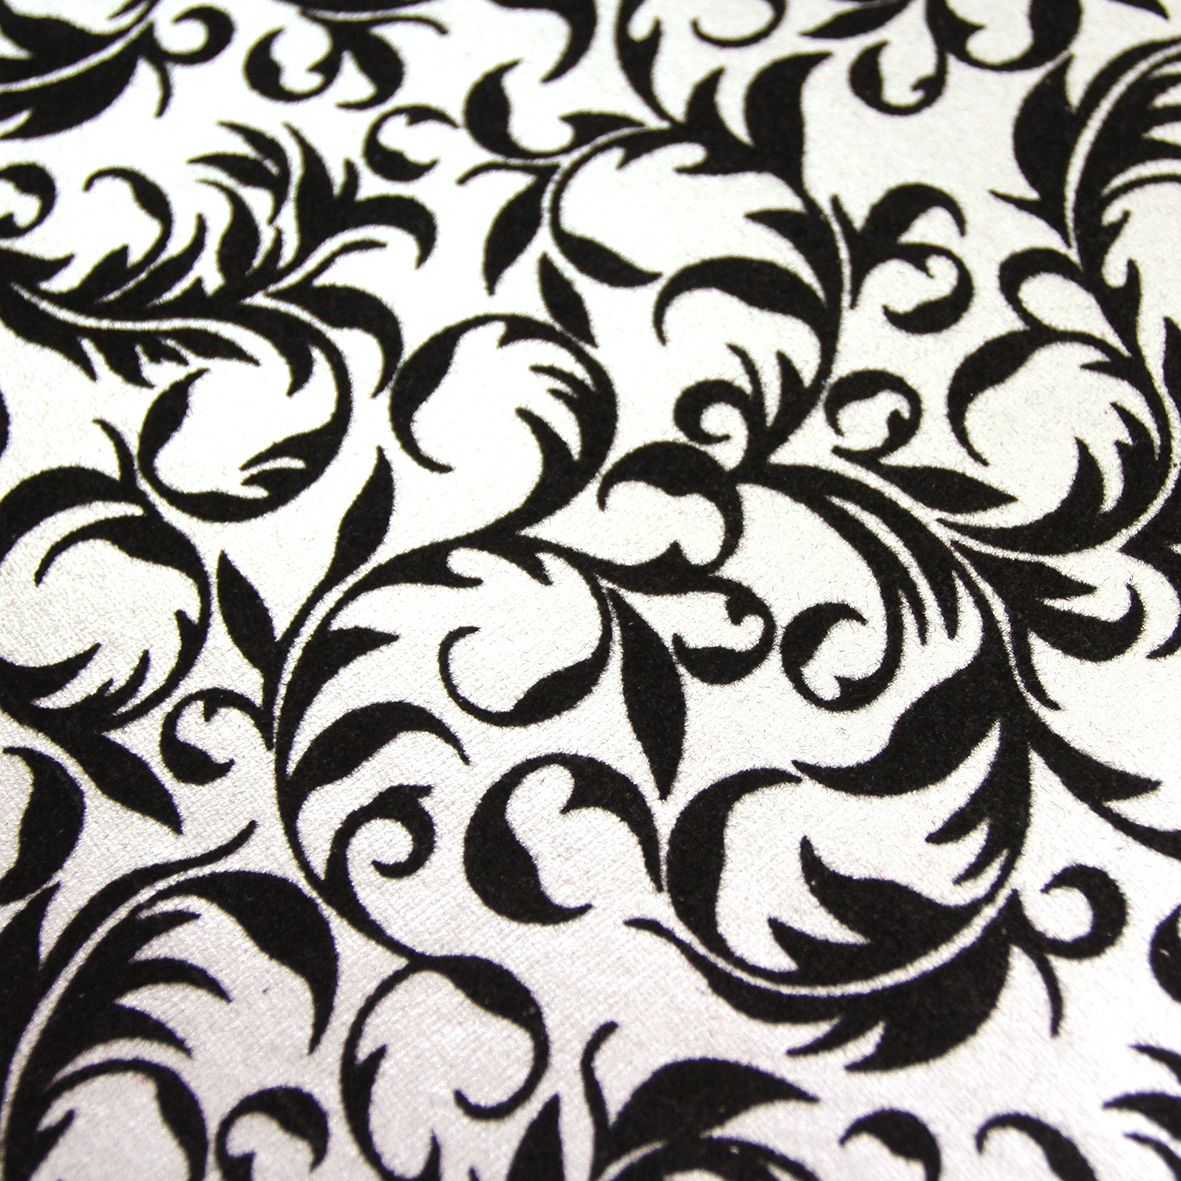 Foil and Flock A4 Paper category image